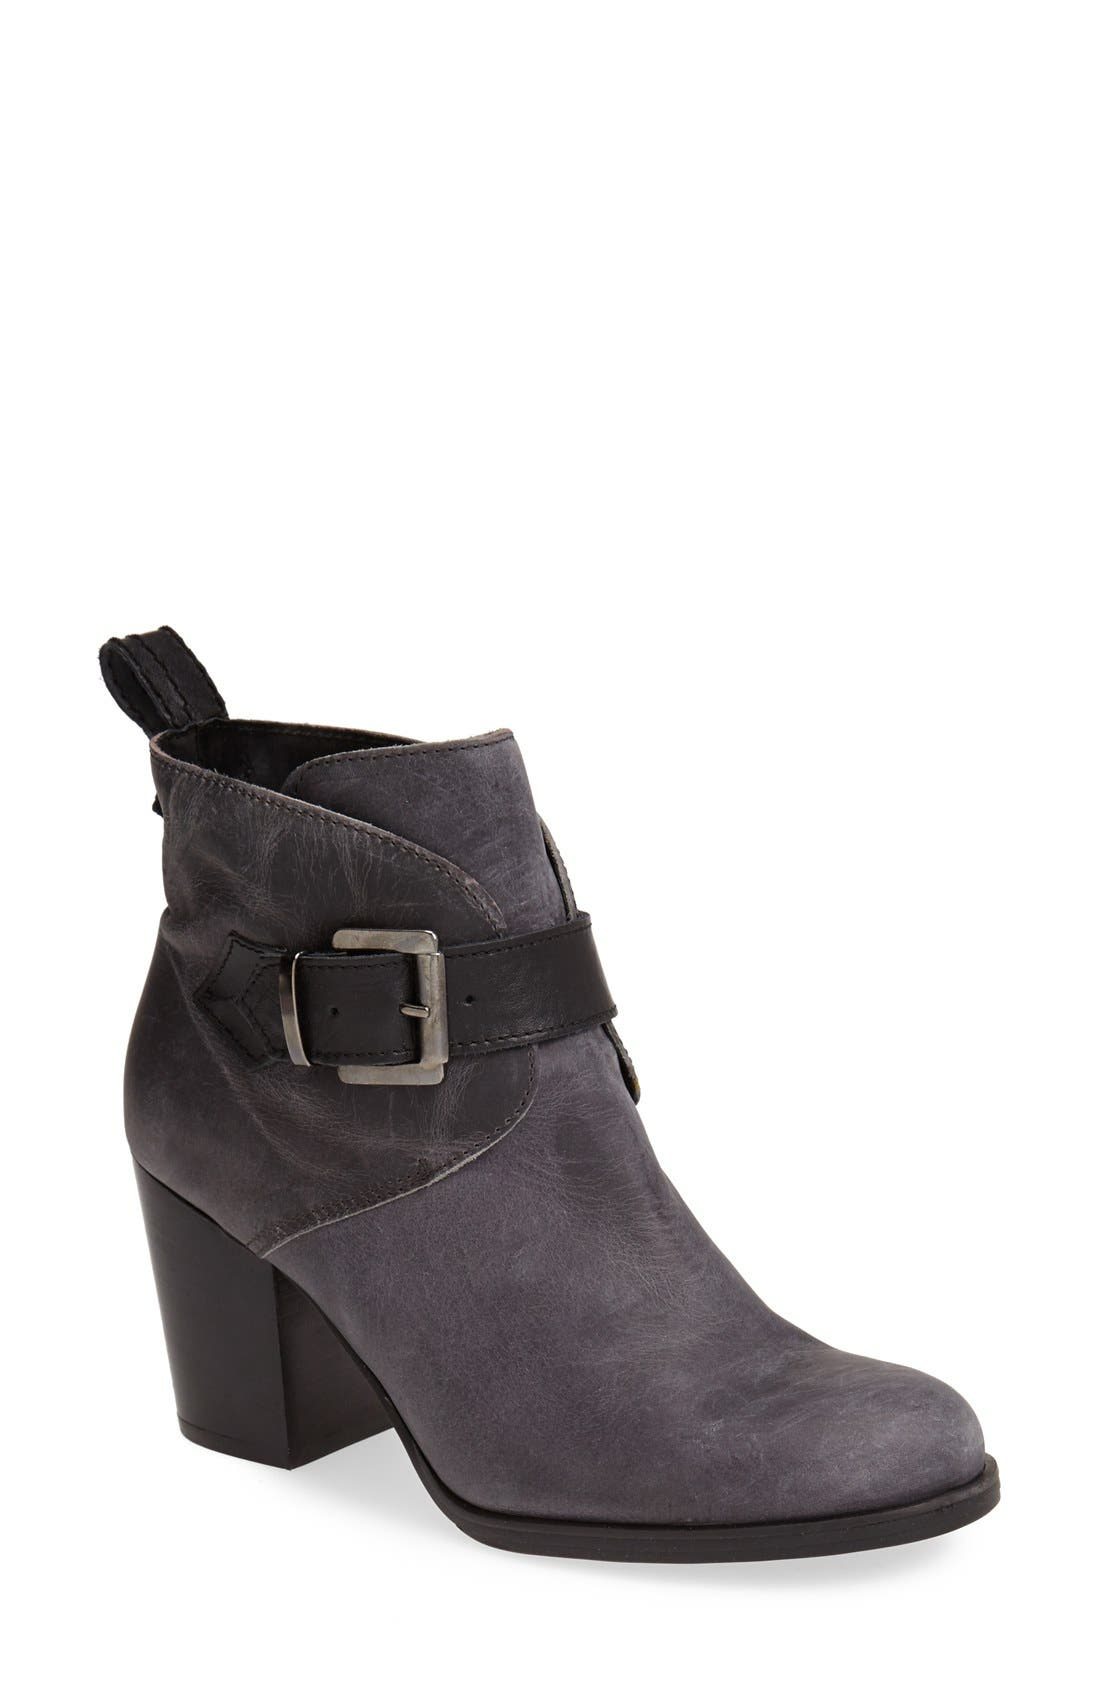 Alternate Image 1 Selected - Charles David 'Celo' Ankle Boot (Women)